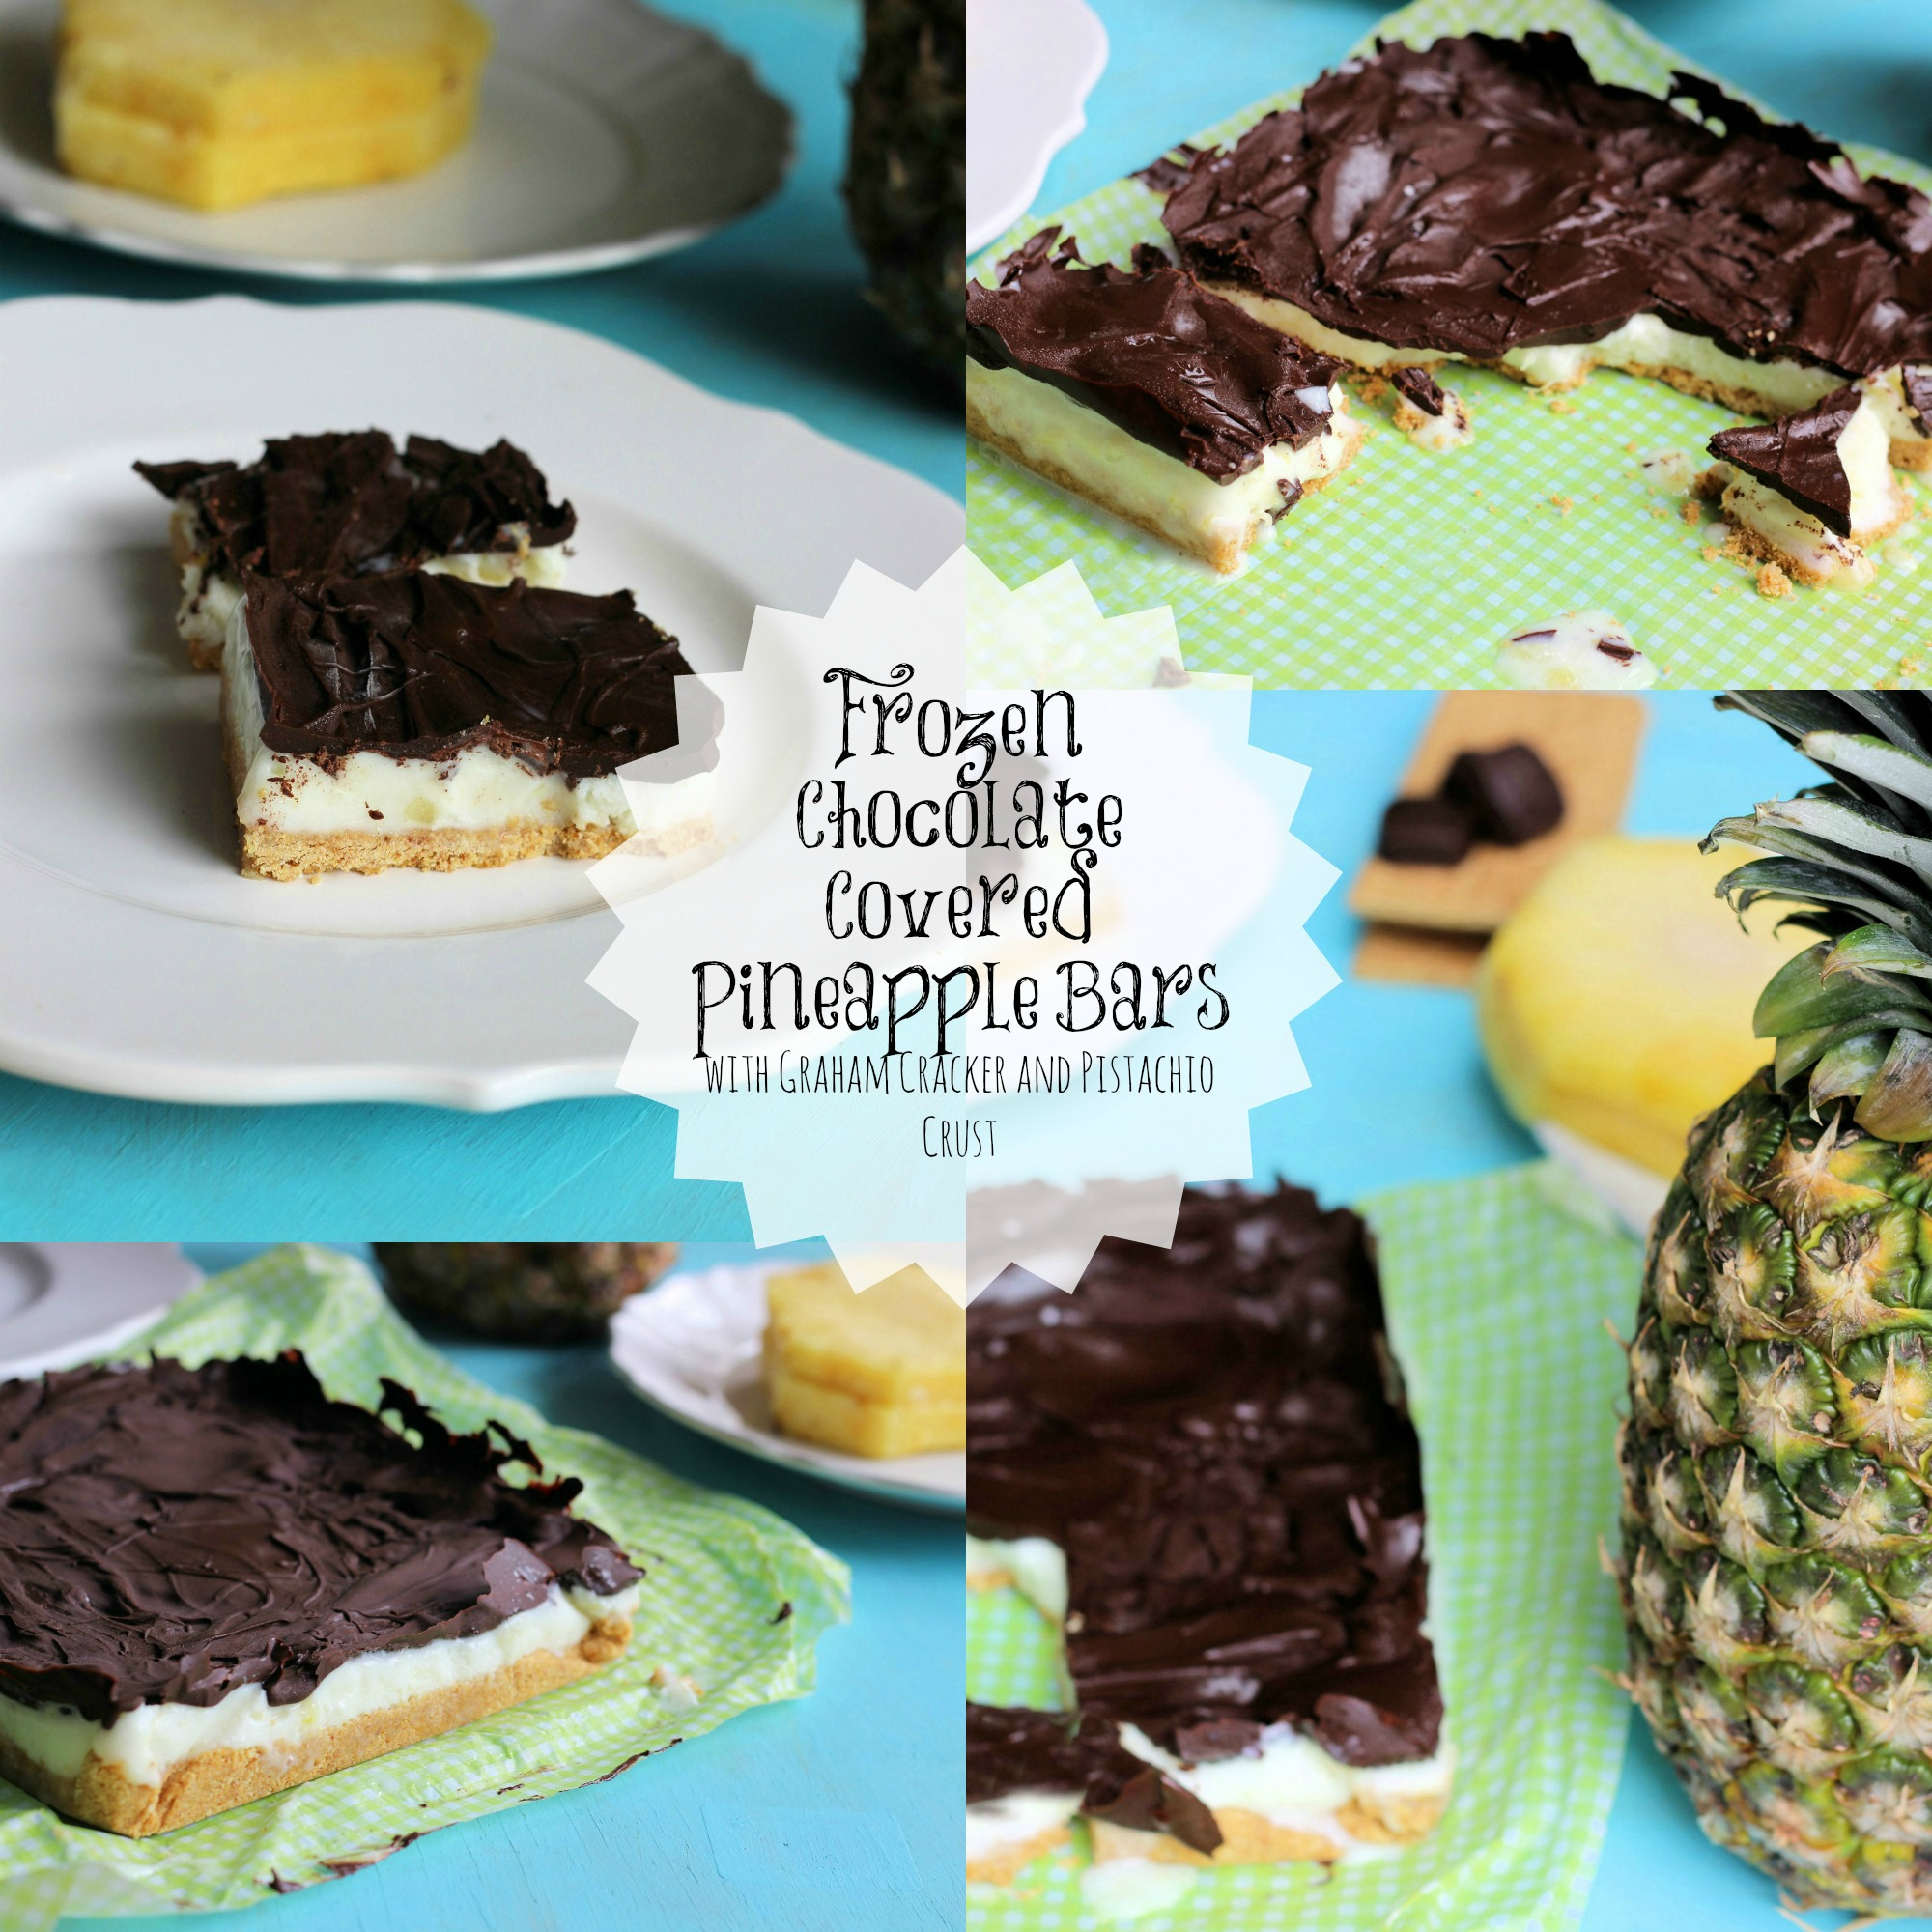 frozen-chocolate-covered-pineapple-bars-with-pistachio-graham-cracker-crust